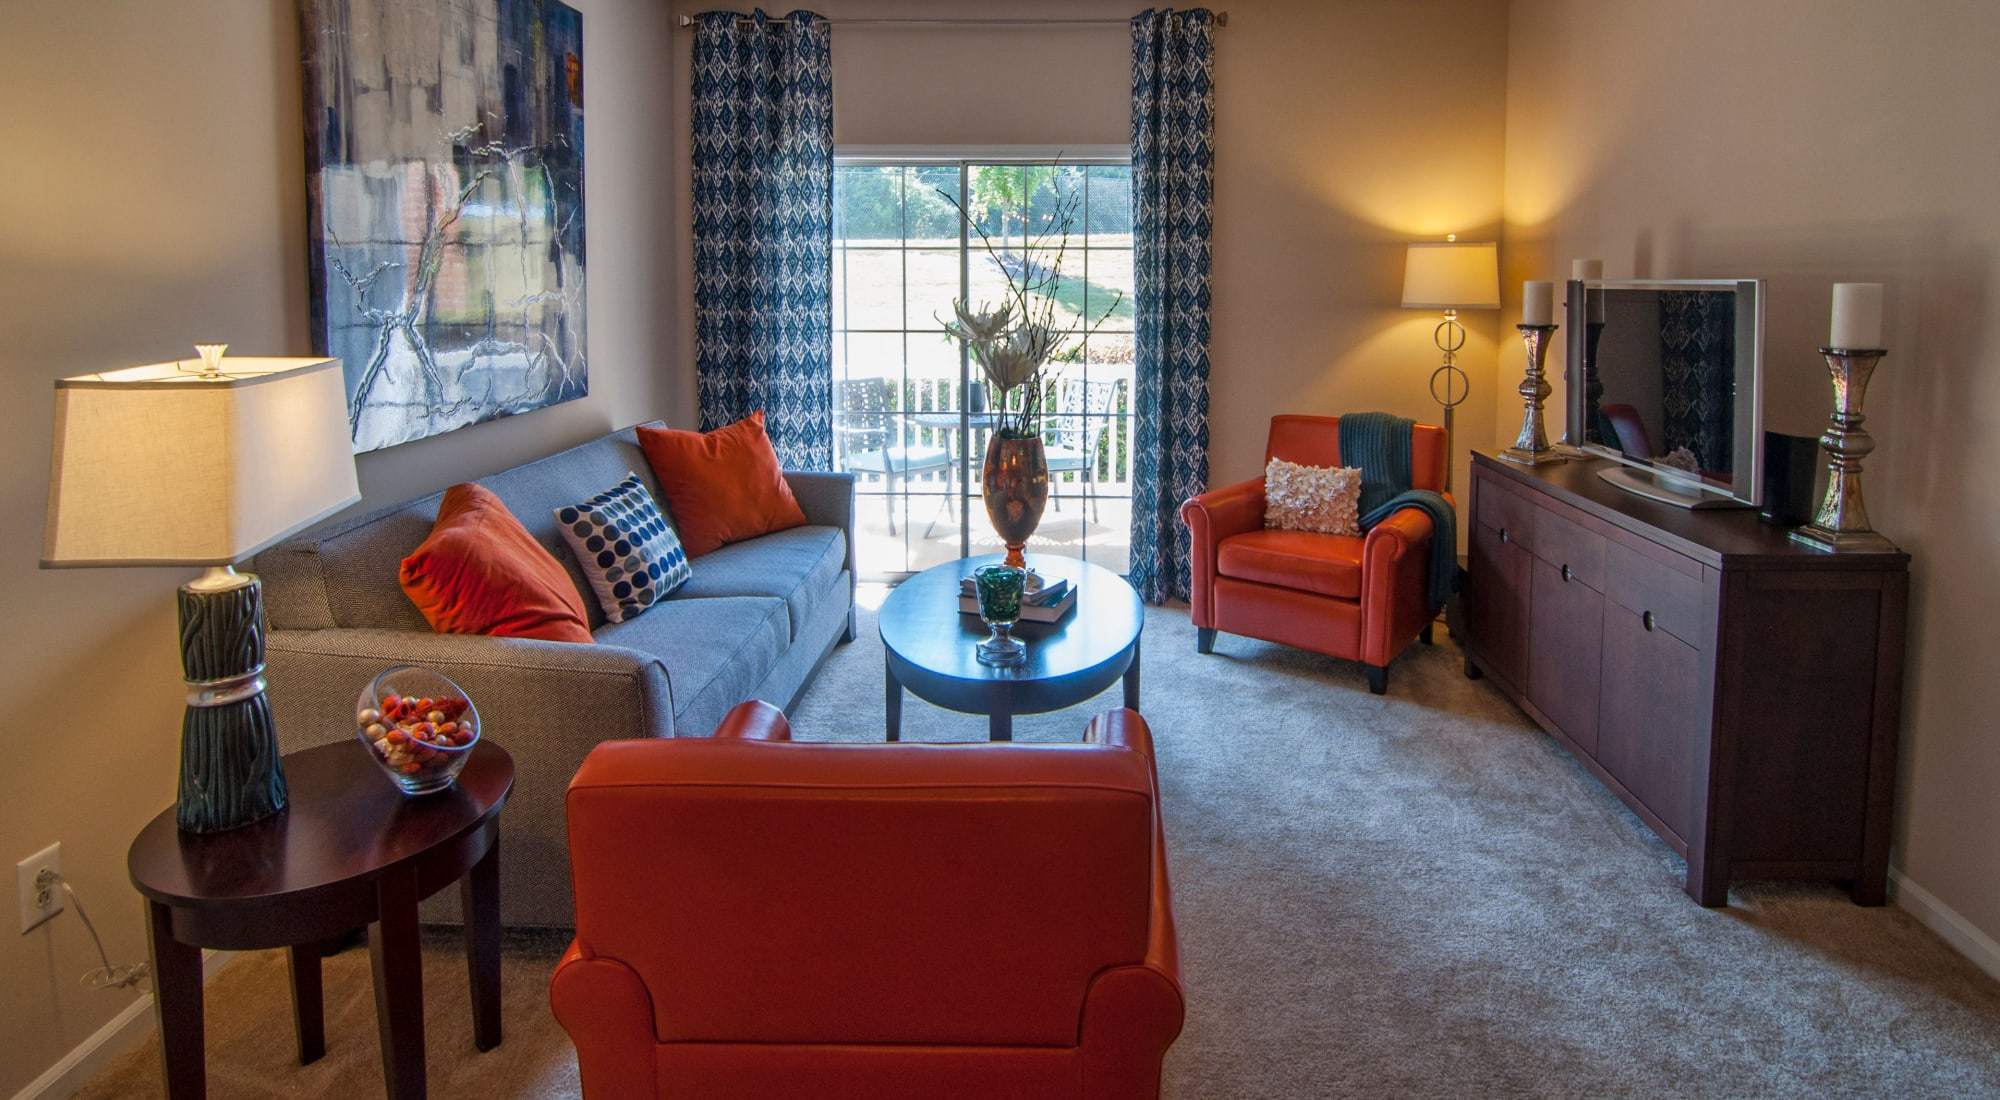 Schedule your tour of Amber Chase Apartment Homes in McDonough, Georgia